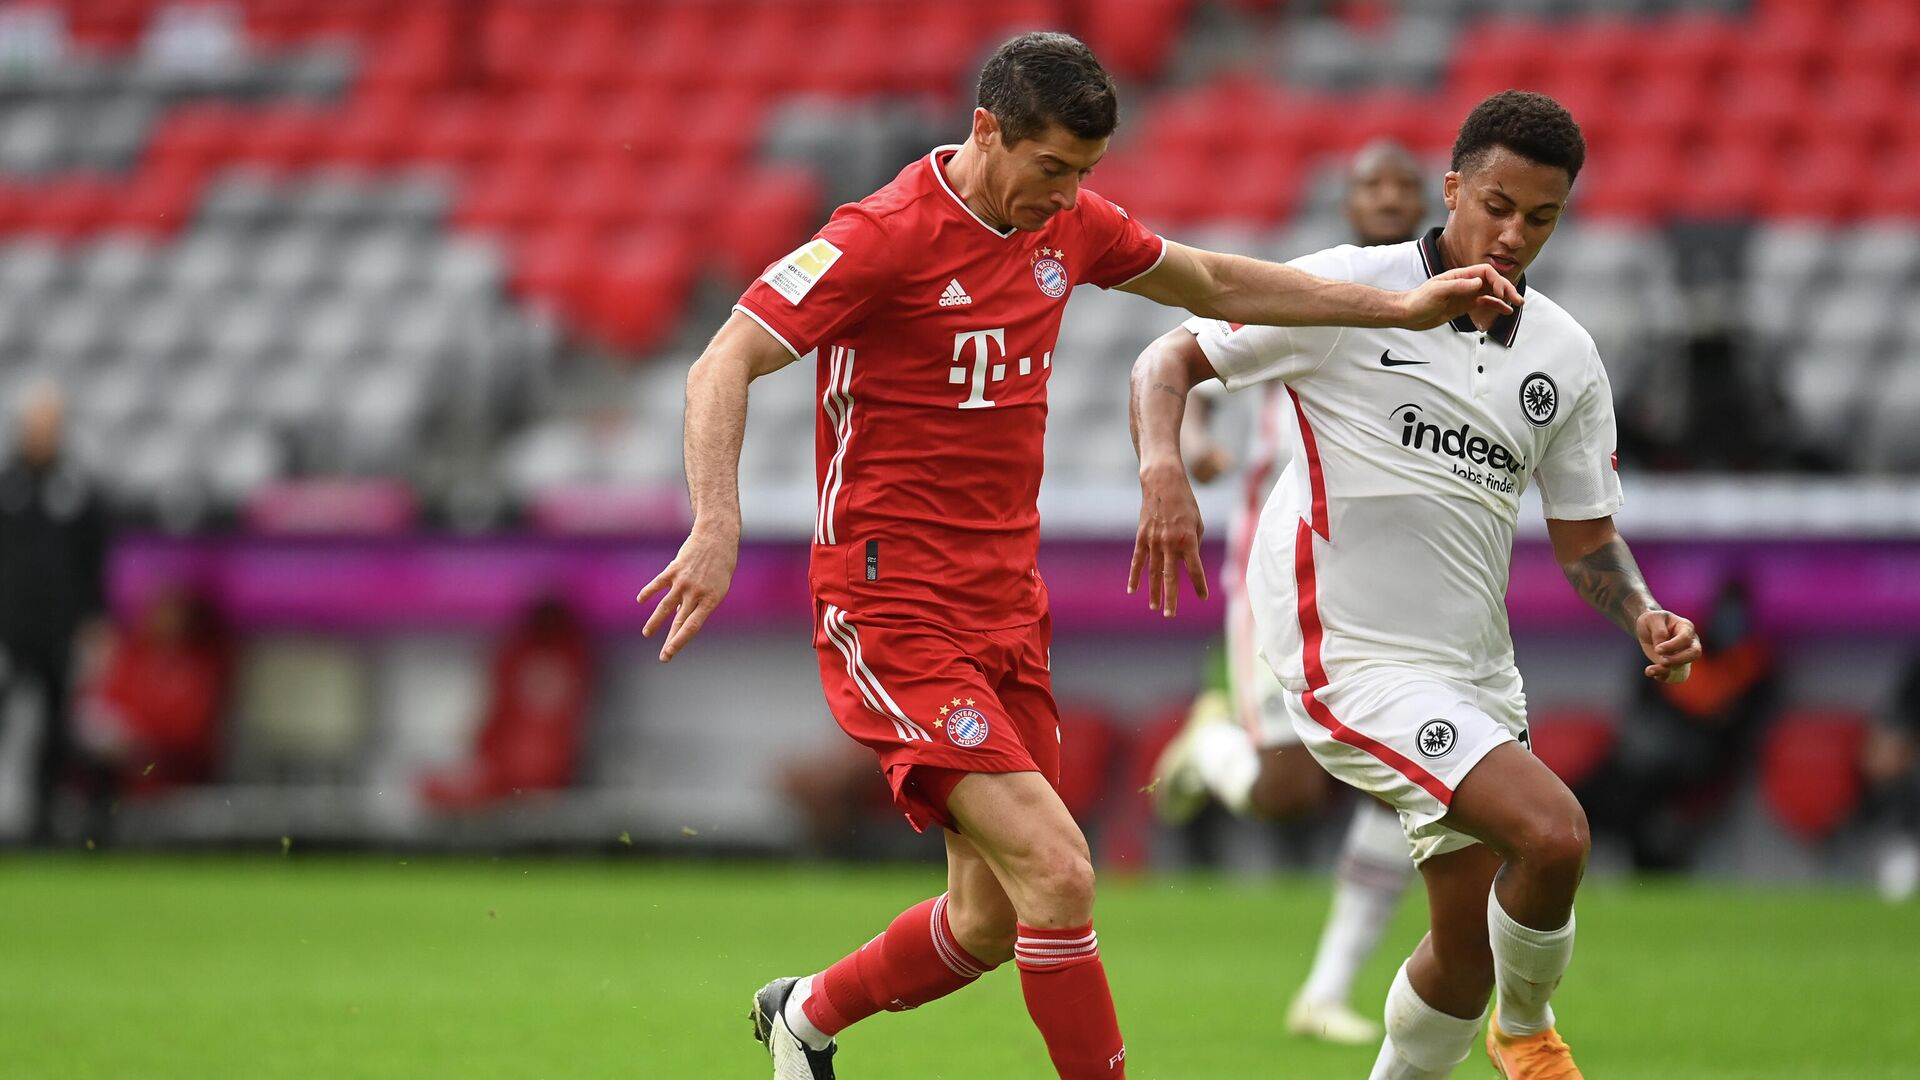 Bayern Munich's Polish forward Robert Lewandowski (L) scores the 3-0 goal for his hat-trick past Frankfurt's Brazilian defender Tuta during the German first division Bundesliga football match between FC Bayern Munich and Eintracht Frankfurt on October 24, 2020 in Munich, southern Germany. (Photo by CHRISTOF STACHE / various sources / AFP) / DFL REGULATIONS PROHIBIT ANY USE OF PHOTOGRAPHS AS IMAGE SEQUENCES AND/OR QUASI-VIDEO - РИА Новости, 1920, 24.10.2020